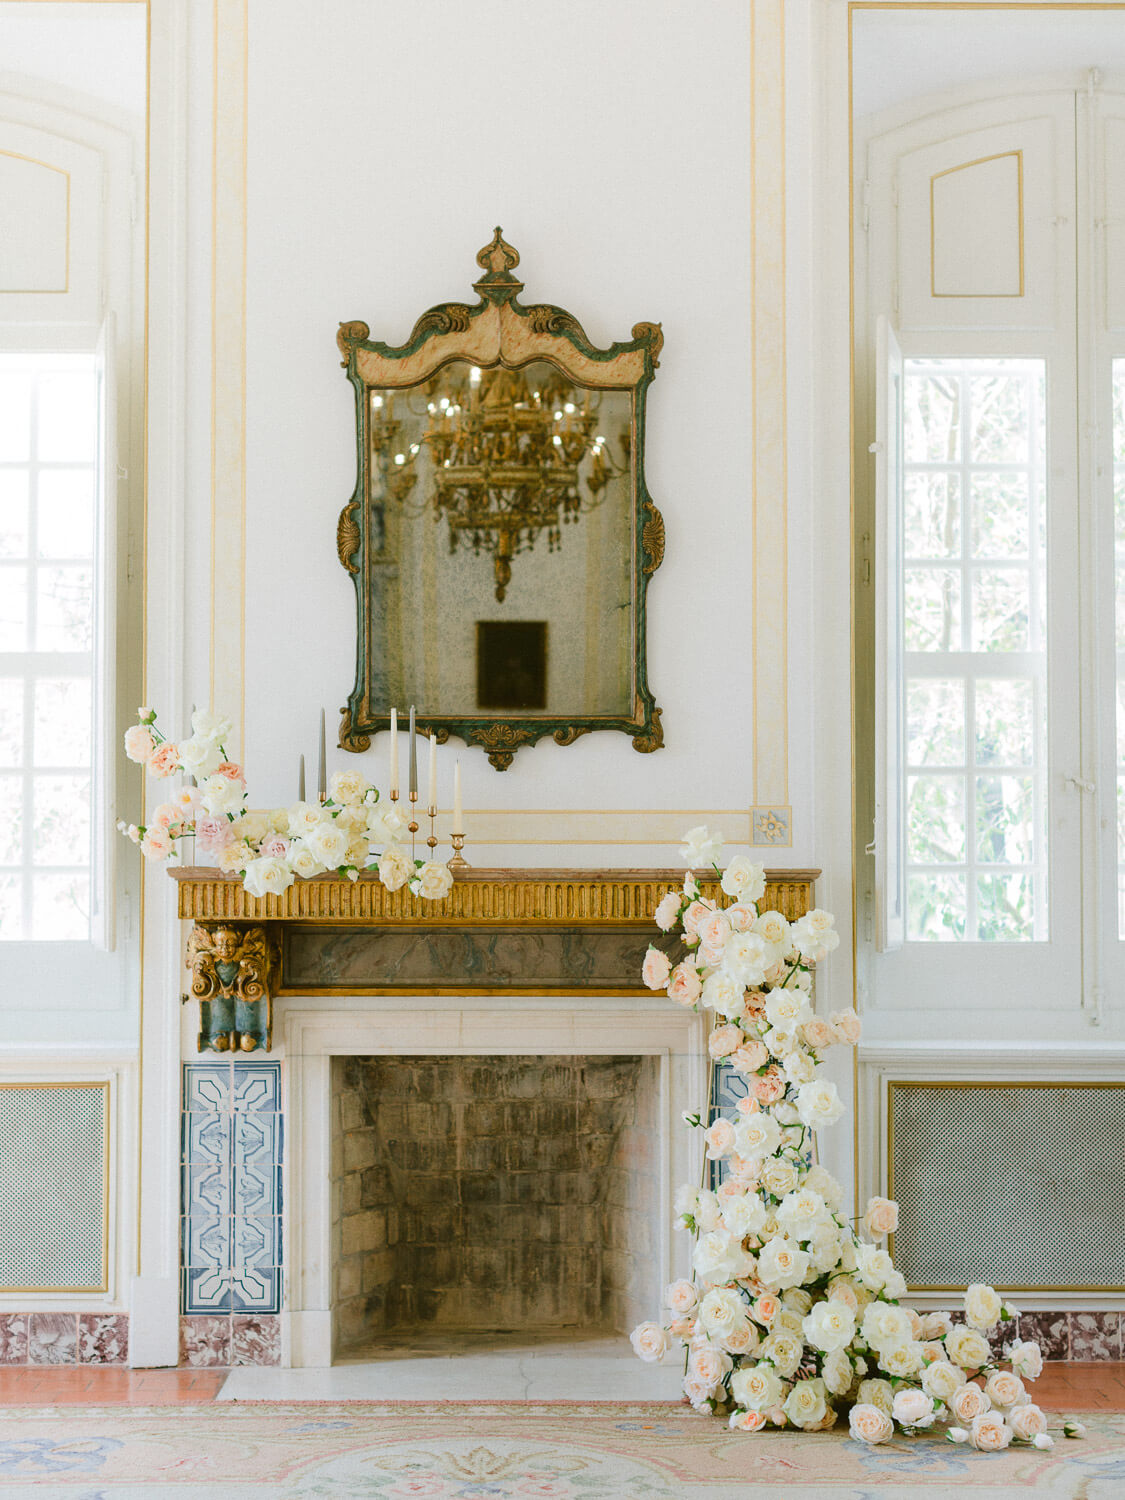 white and coral floral wedding decoration for mantlepiece at Palacio de Queluz photographed by Portugal Wedding Photographer